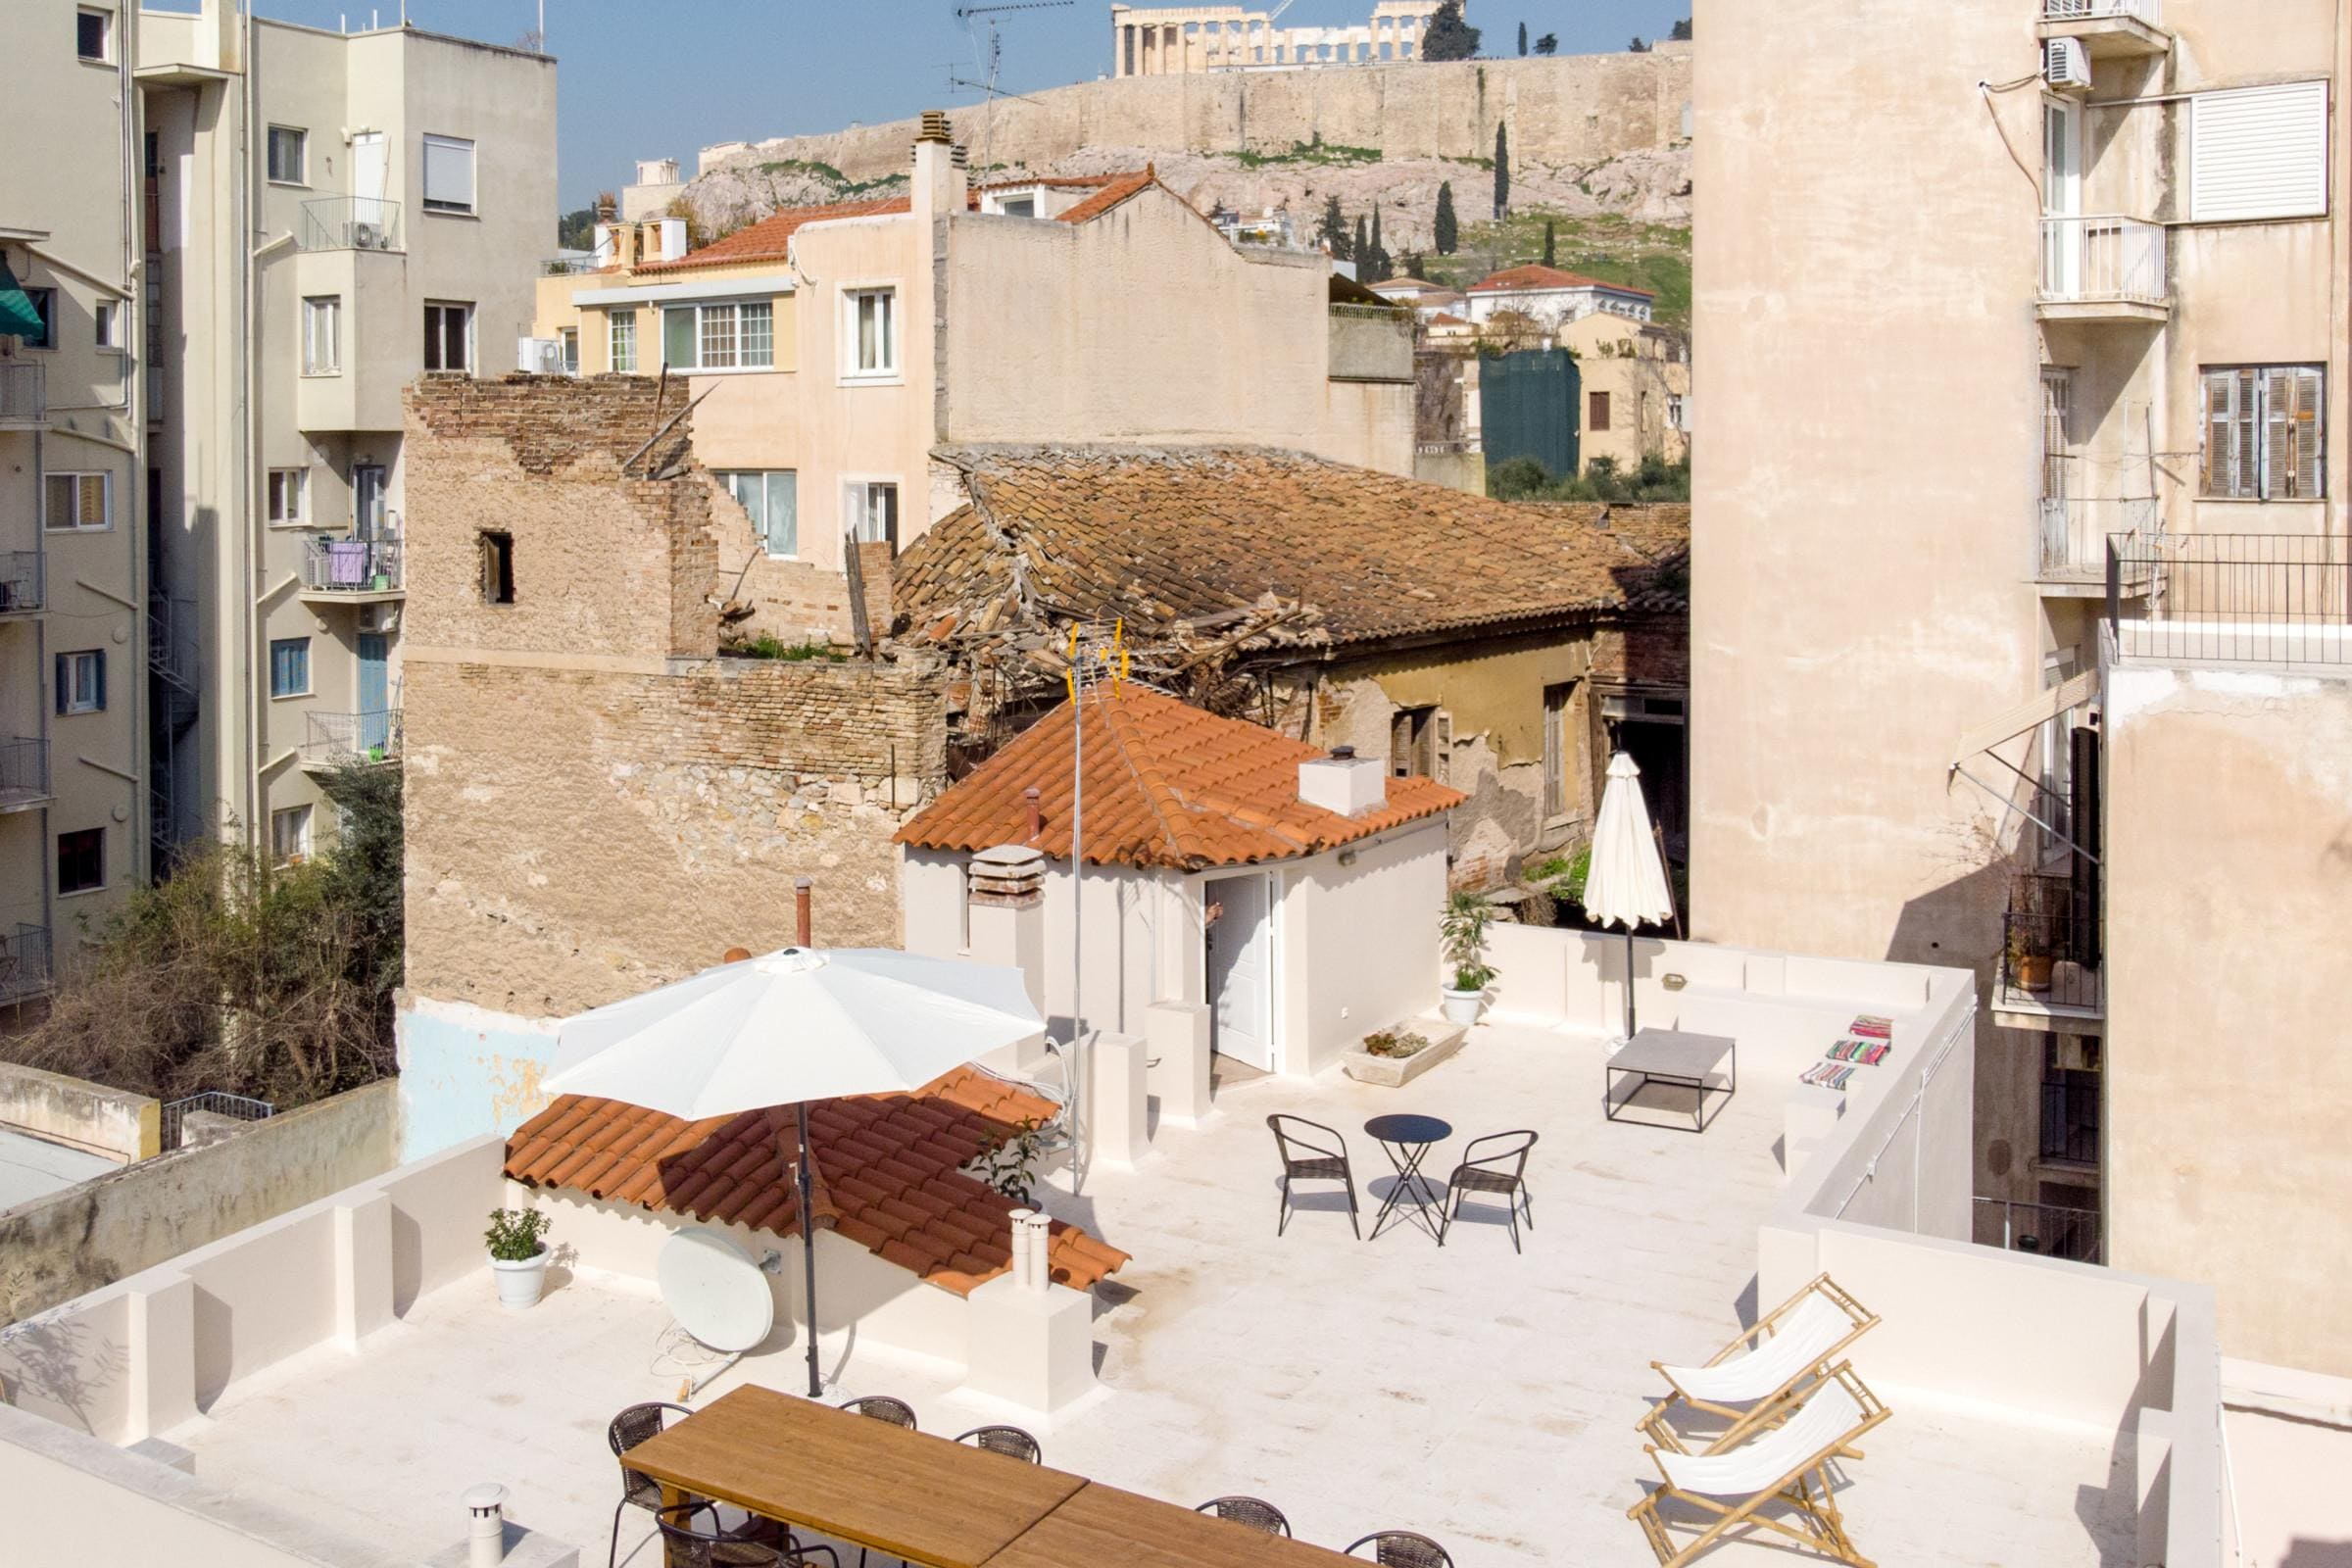 Property Image 2 - 6BR Townhouse with Huge Roof Terrace and Acropolis View